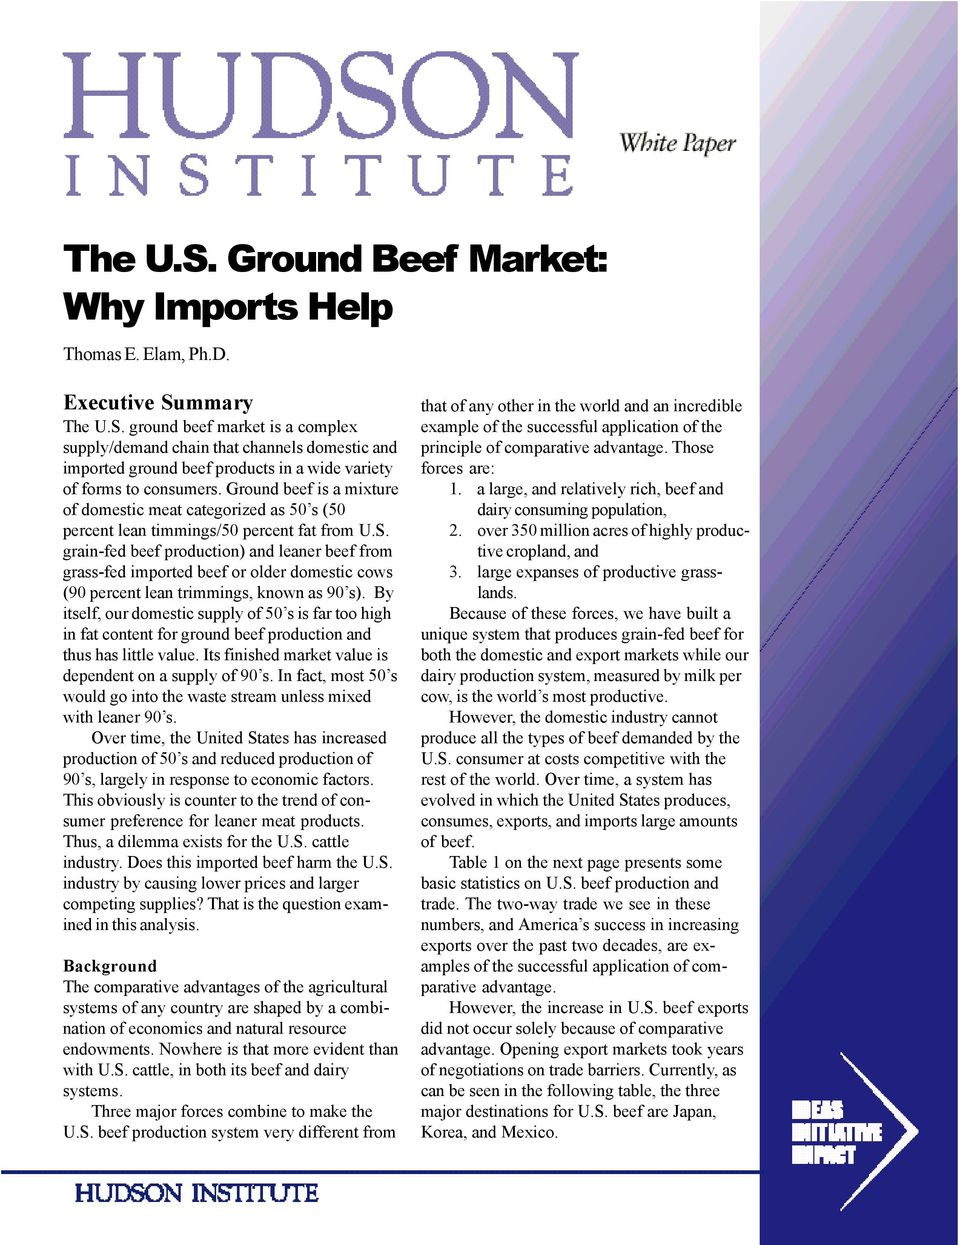 grain-fed beef production) and leaner beef from grass-fed imported beef or older domestic cows (90 percent lean trimmings, known as 90 s).